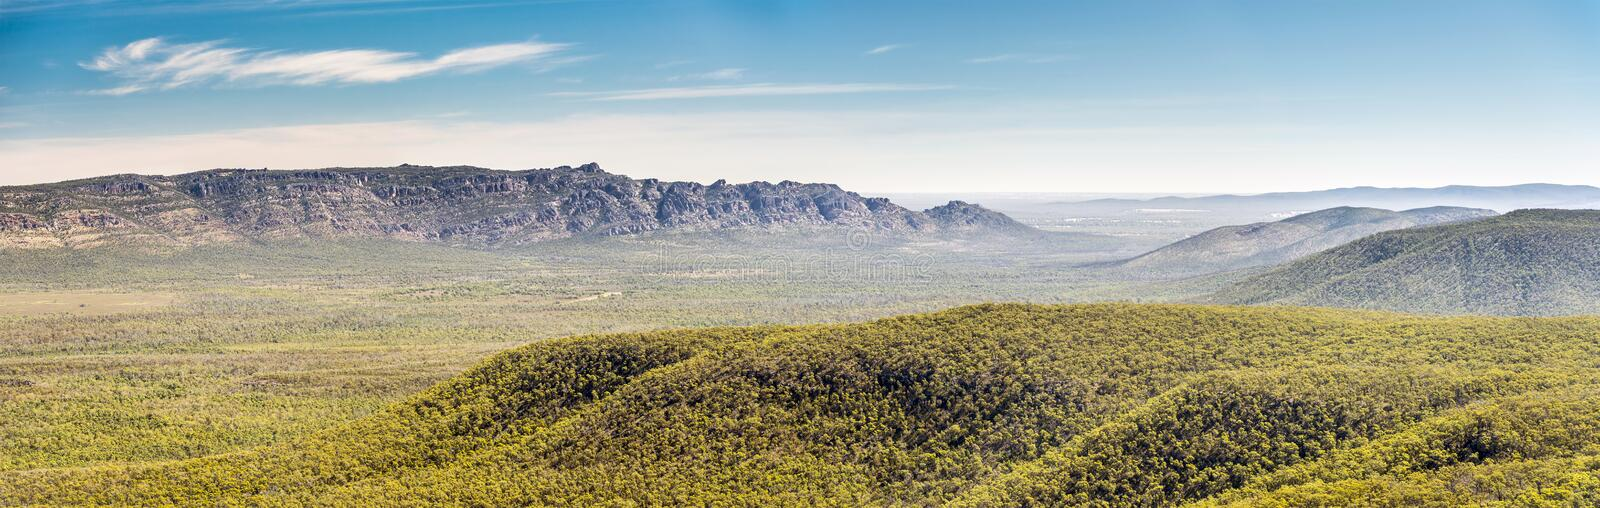 Grampians Panorama. Panoramic view of mountains in the Victoria Valley, Grampians National Park, Victoria, Australia royalty free stock image